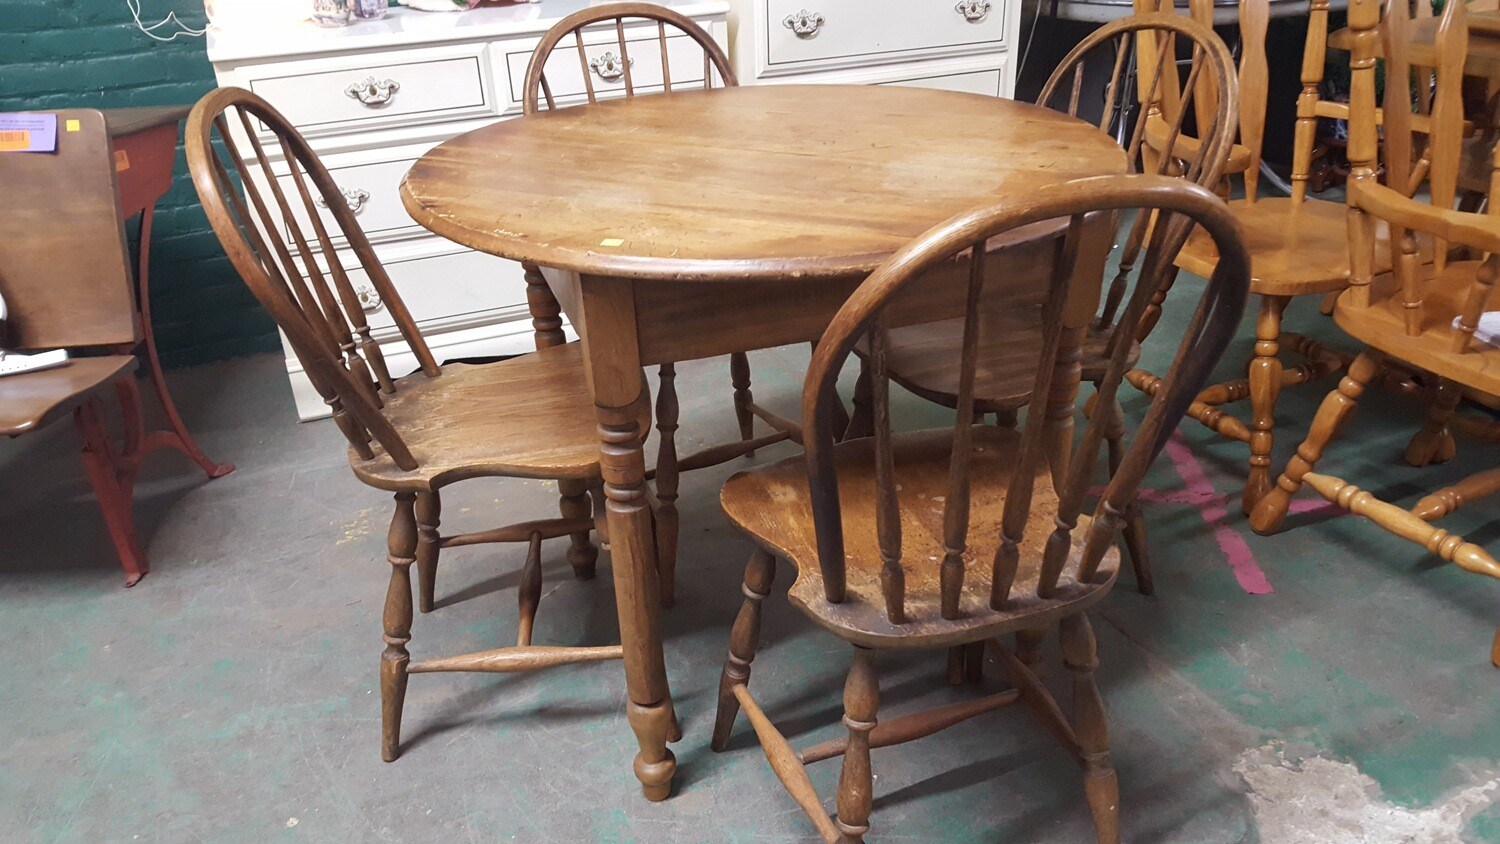 Antique oak table, 4 chairs (OR)